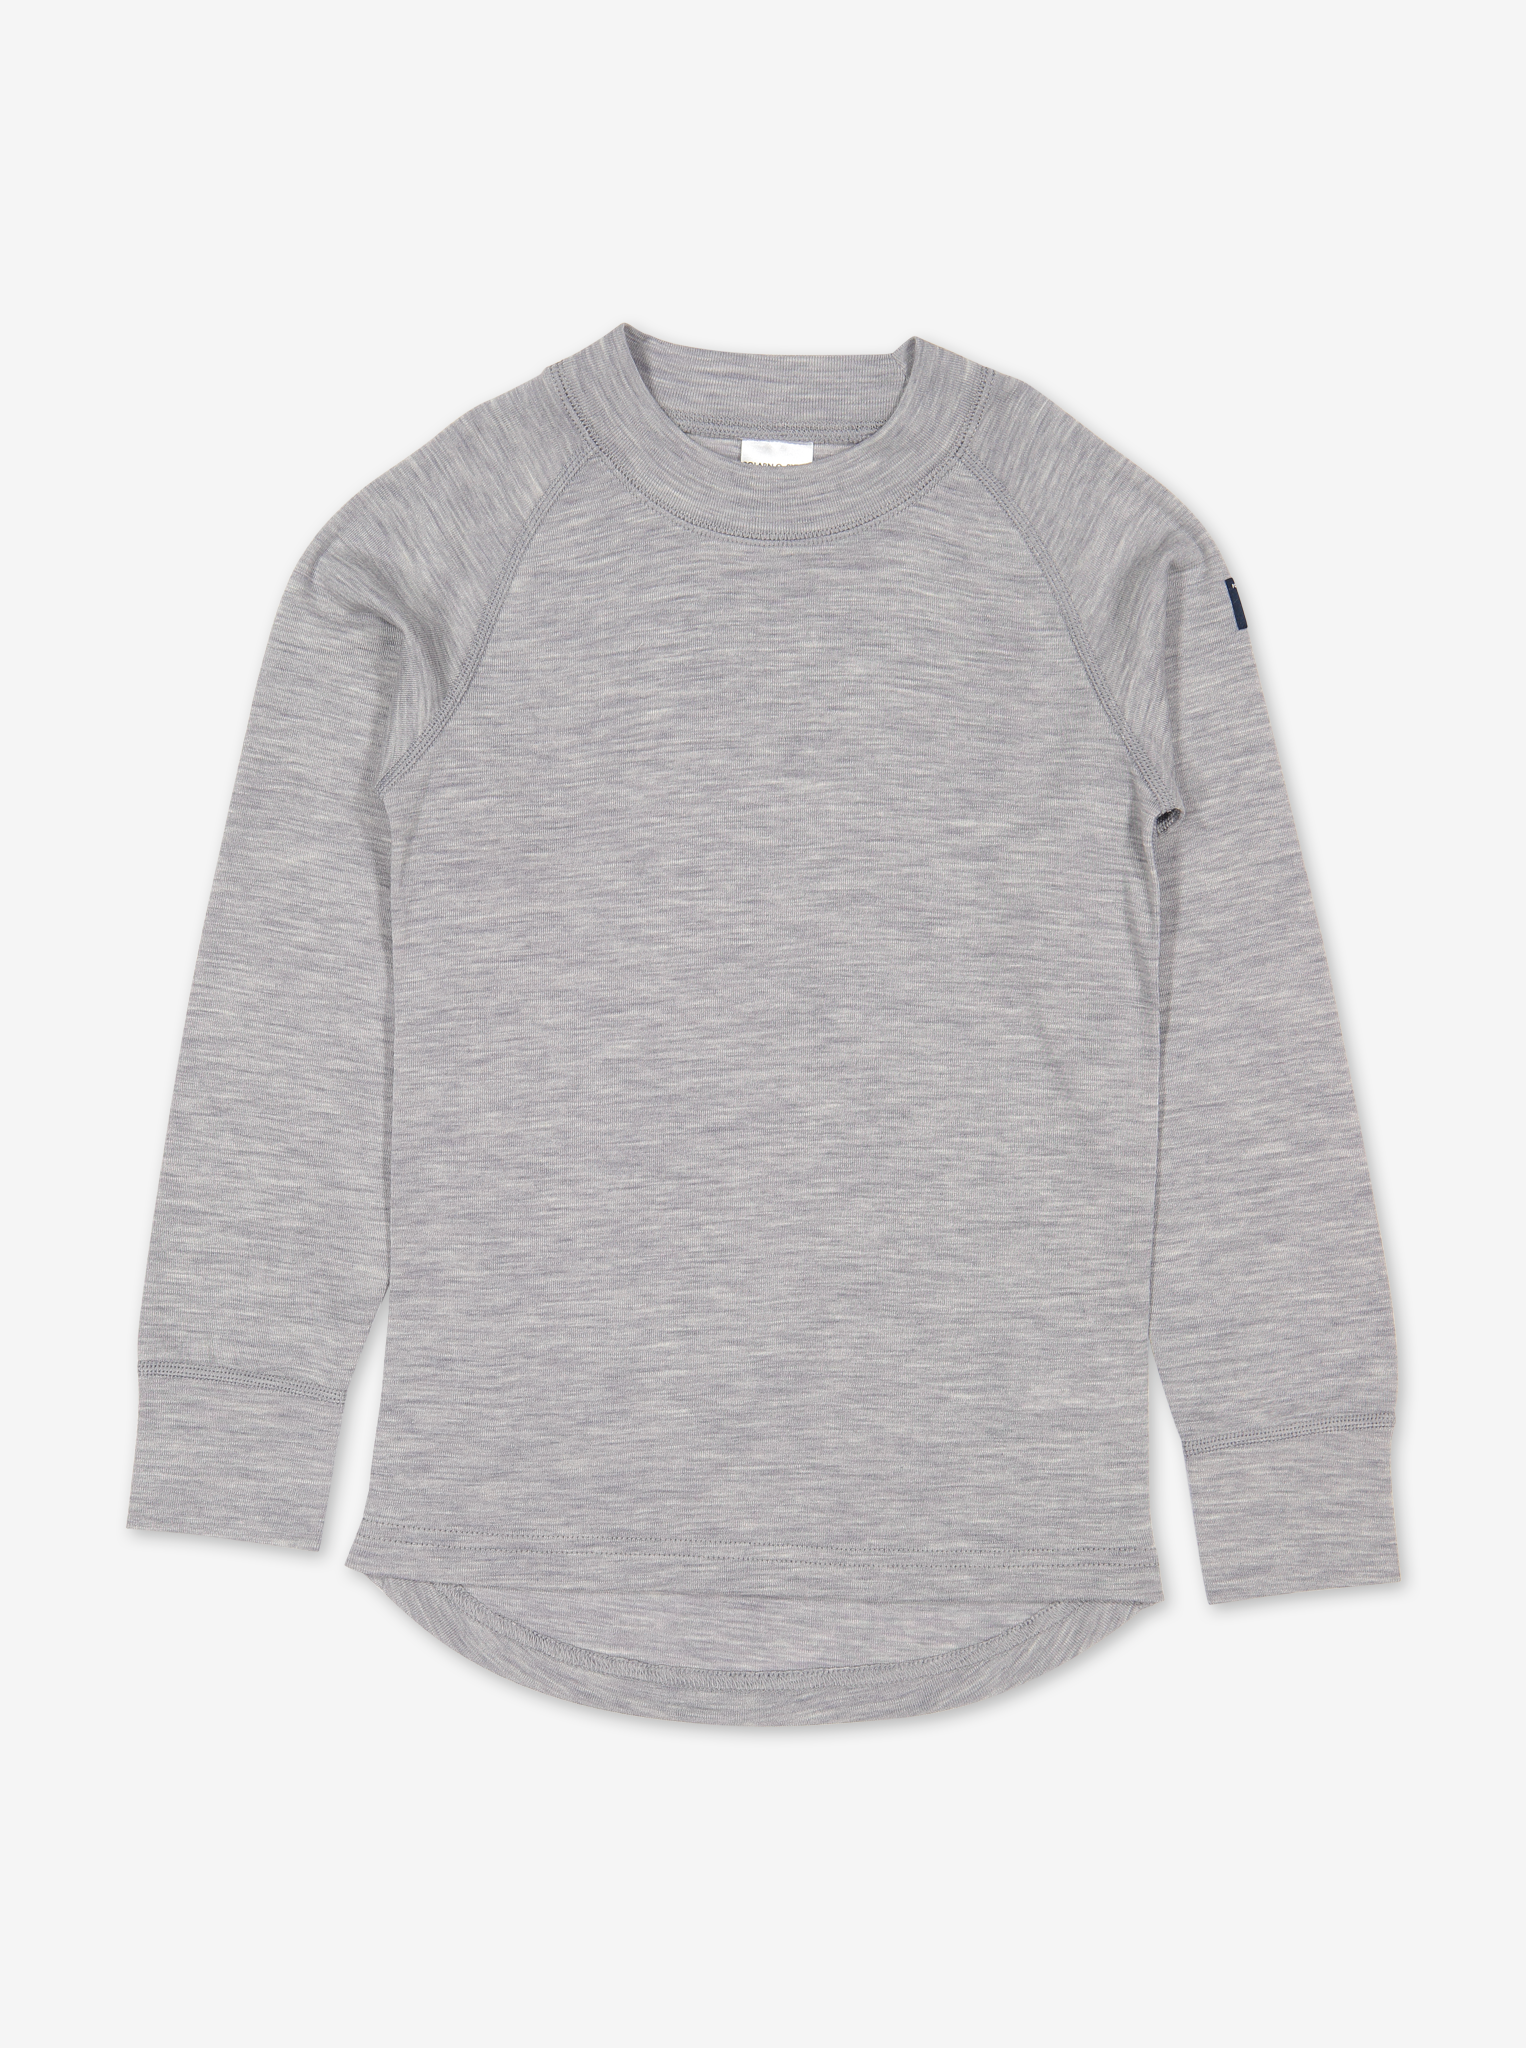 Thermal Merino Kids Top---Grey---Unisex---6m-12y